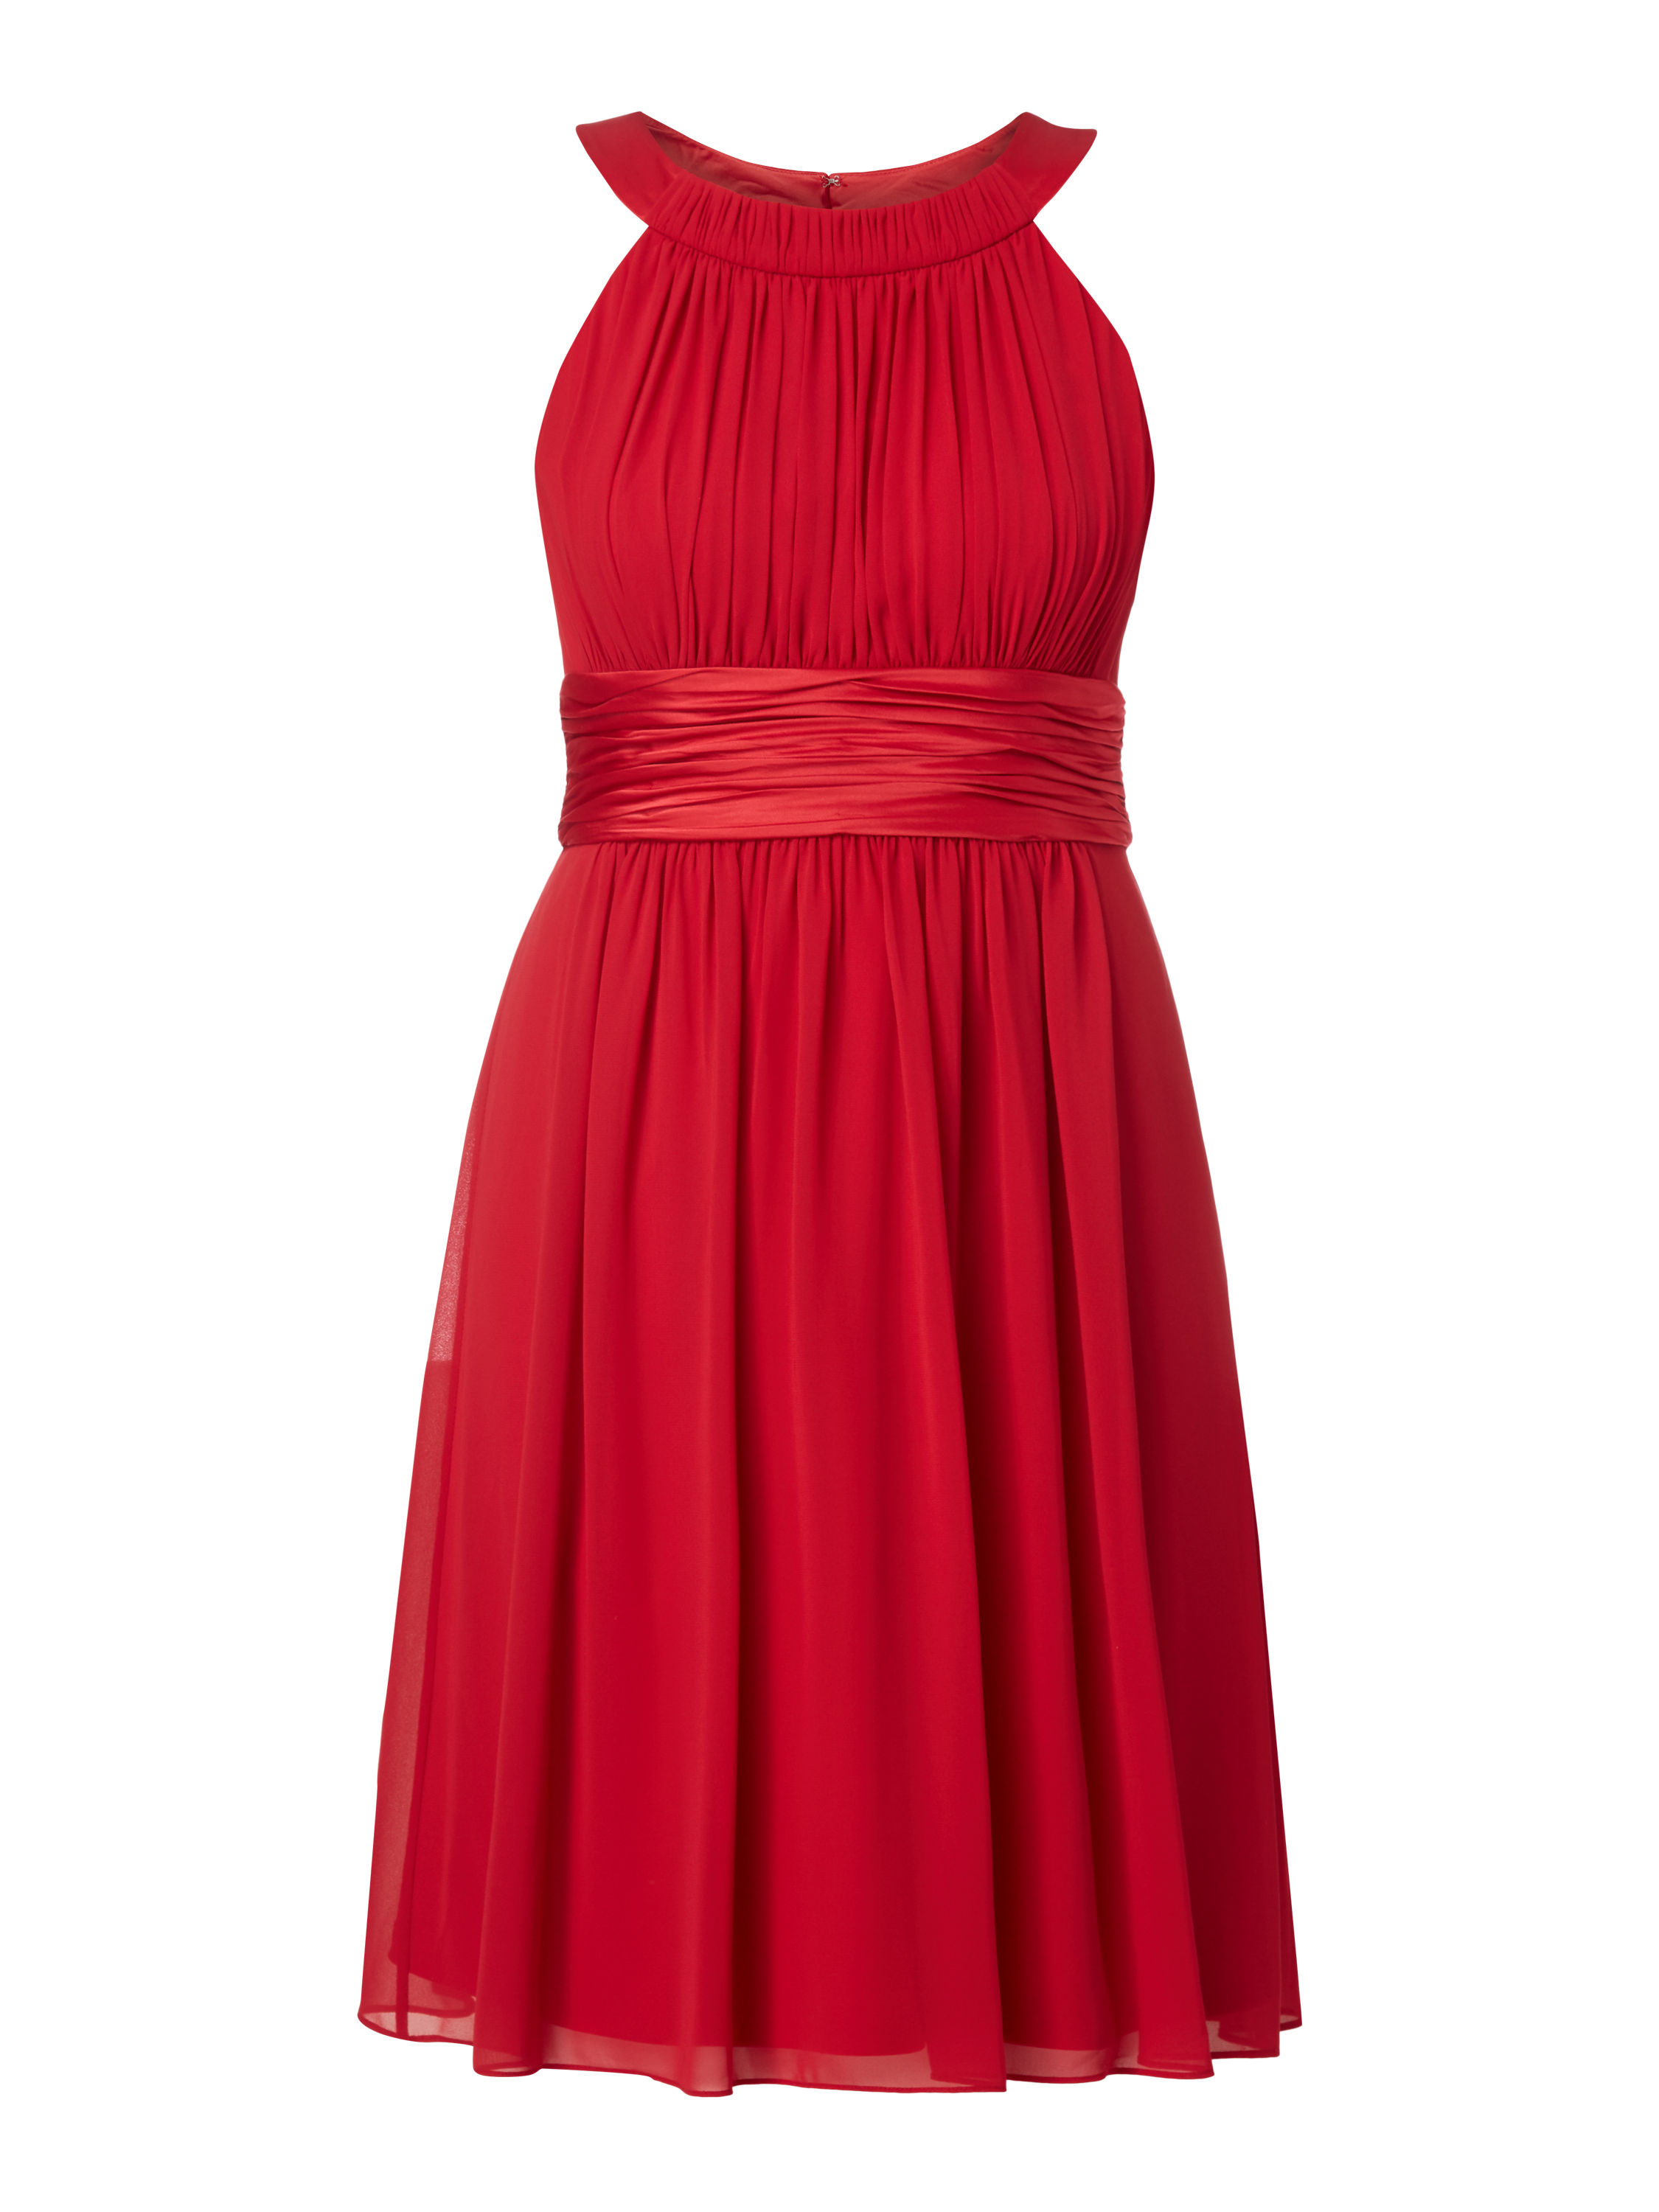 91bd21bdfe4d53 JAKES-COCKTAIL Cocktailkleid mit Collierkragen in Rot online kaufen  (9726882) ▷ P C Online Shop